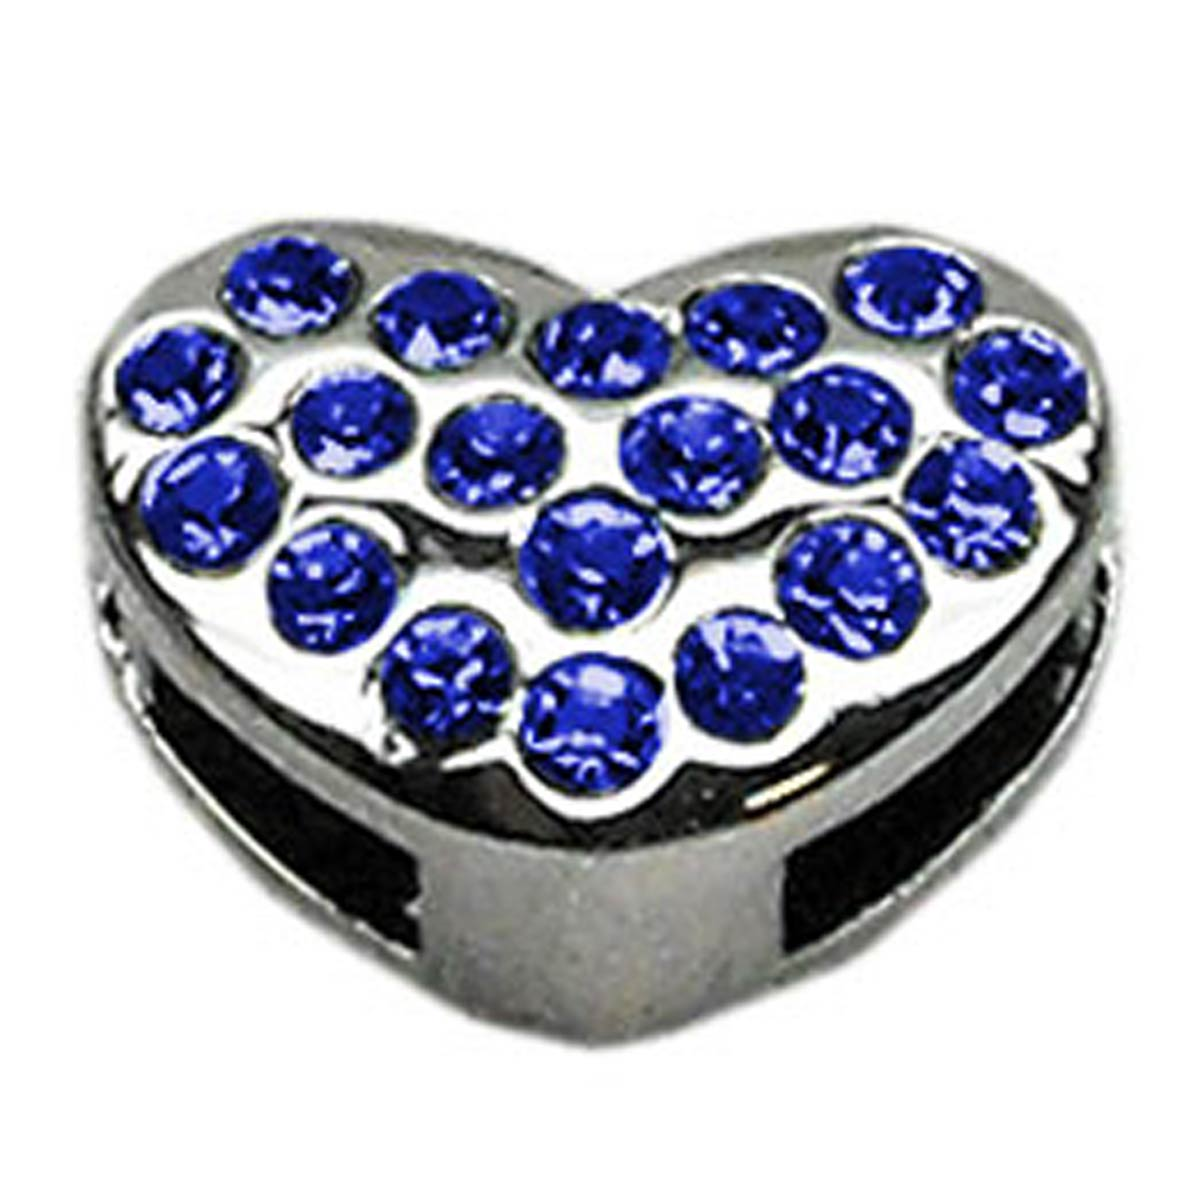 Puffy Heart Slider Dog Collar Charm - Blue